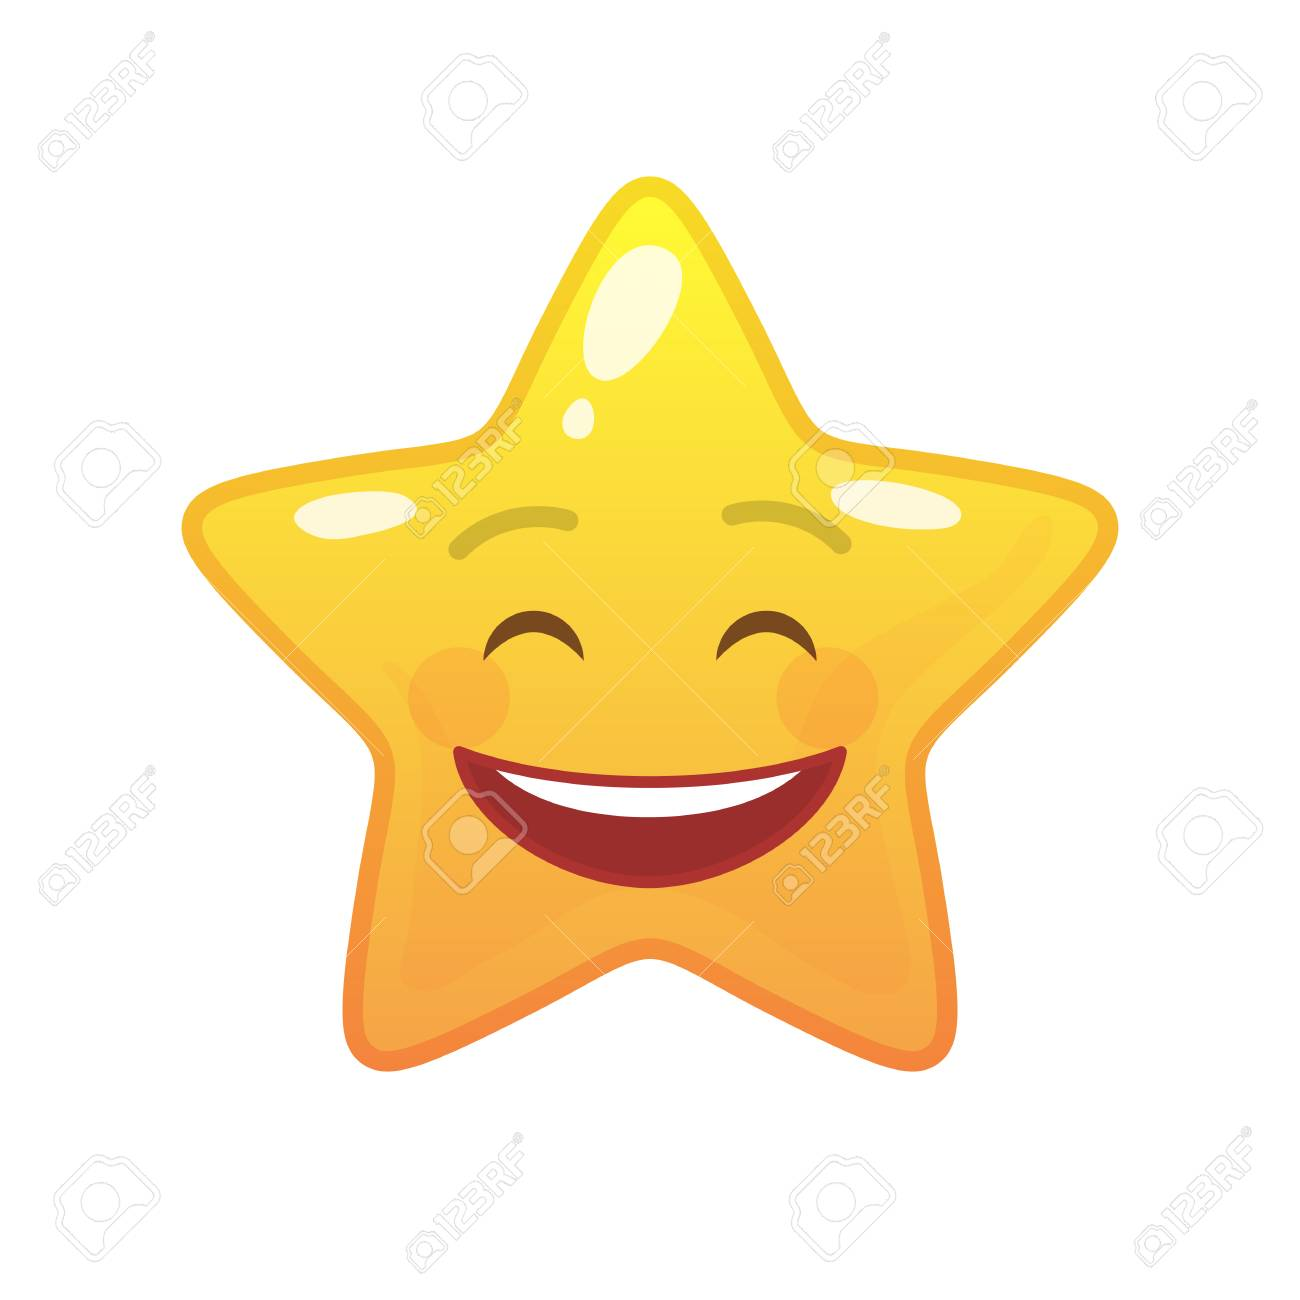 Laughing star shaped comic emoticon  Smiling face with facial